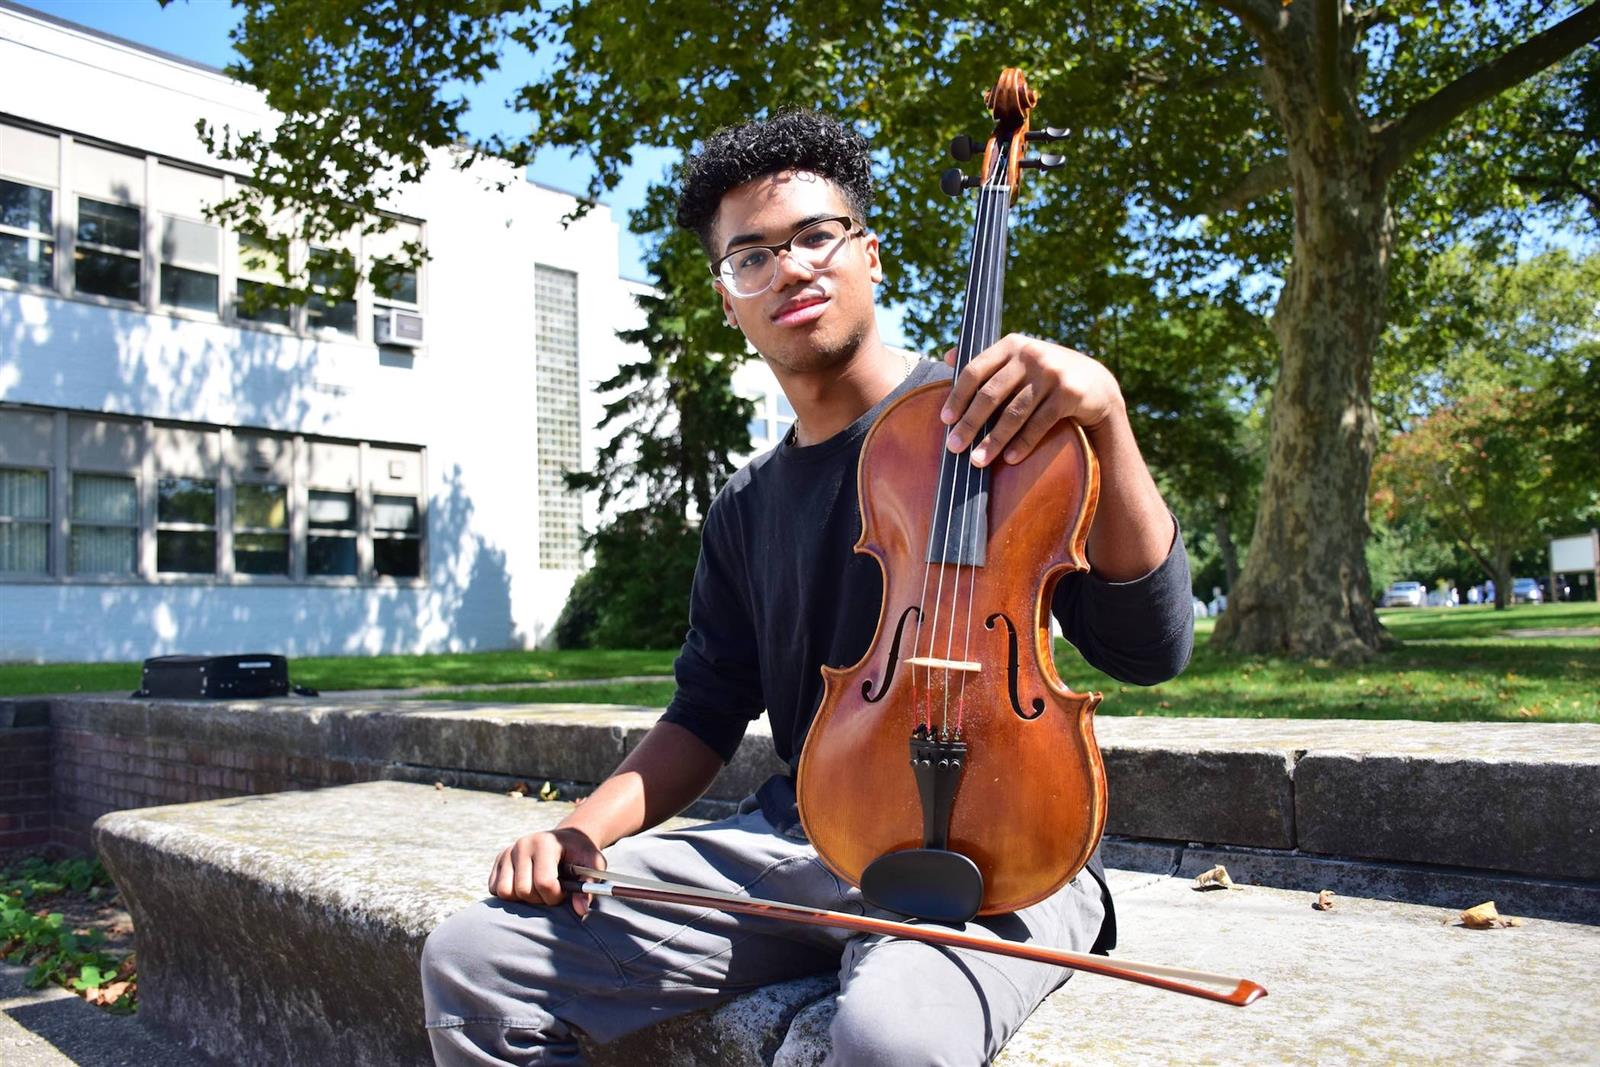 Violist earns All-National Music Selection